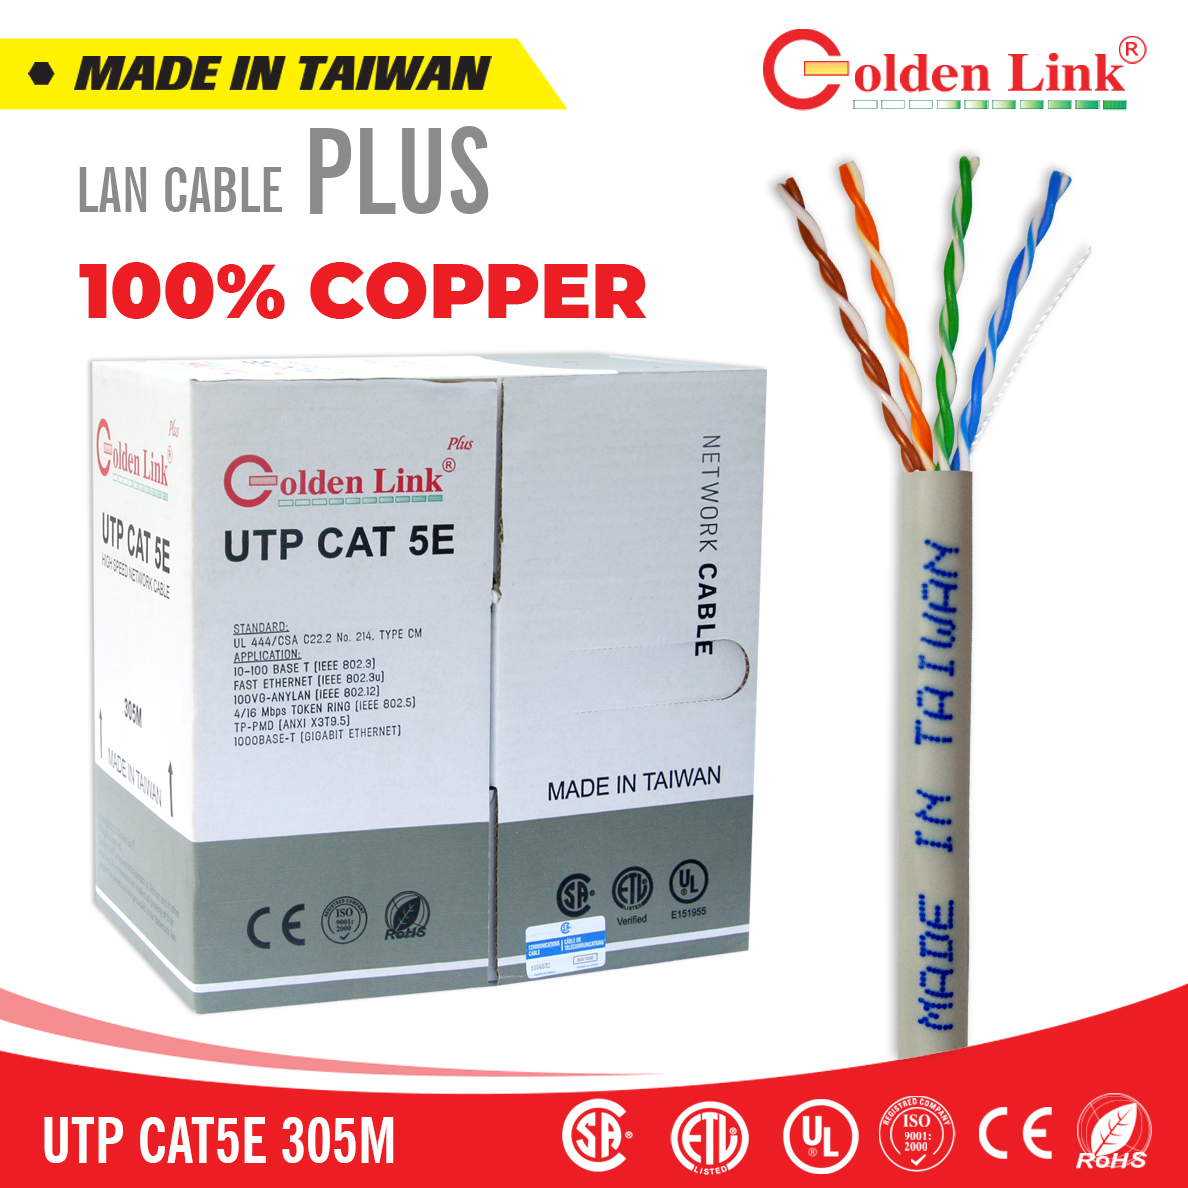 Cáp mạng Golden Link Plus UTP CAT 5E 305m Made in Taiwan